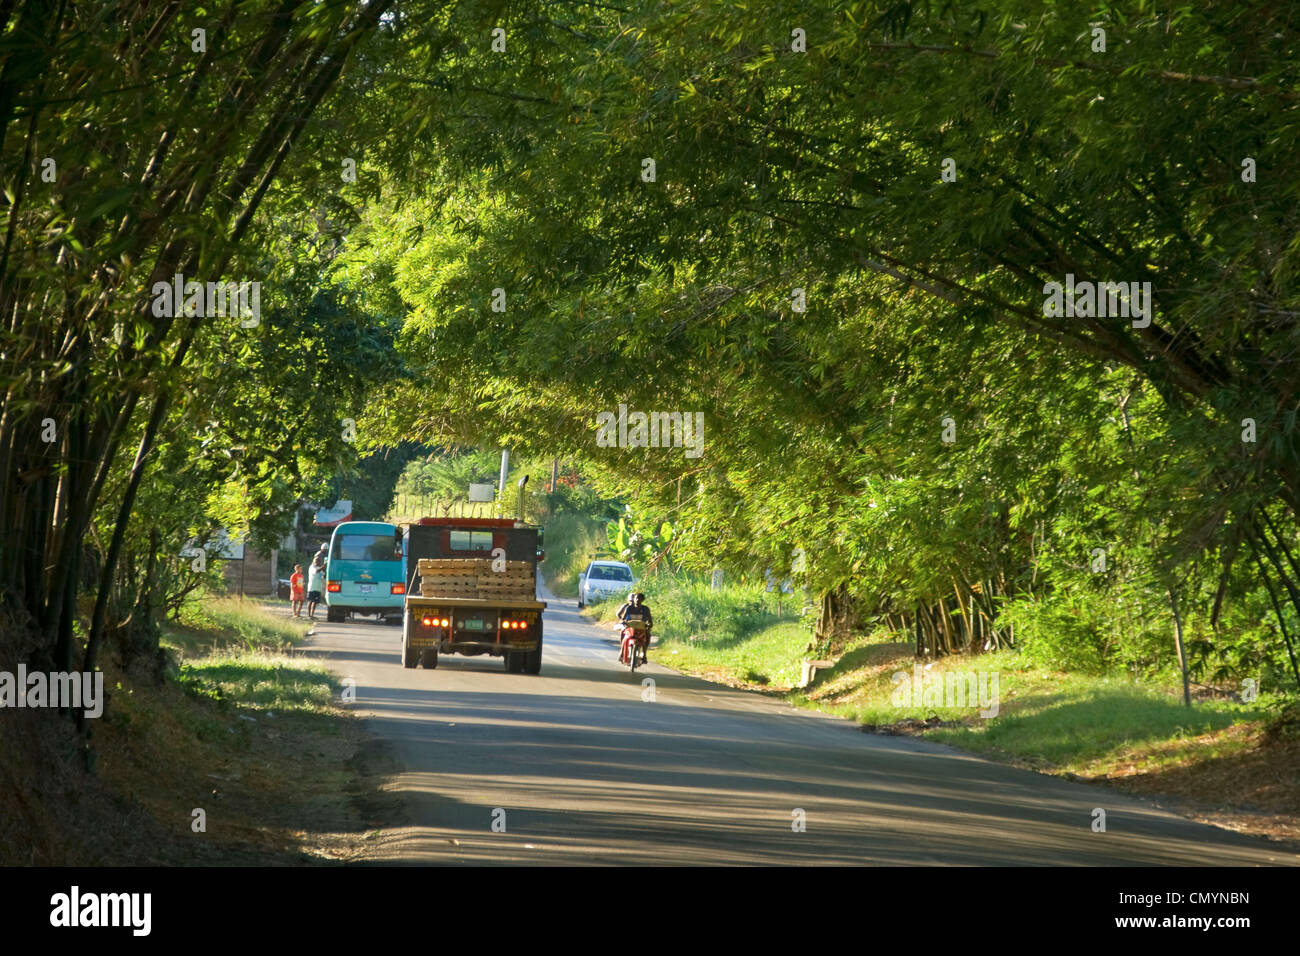 Jamaica St. Elisabeth Bamboo Avenue 2 1/2 miles long Bamboo trees overgrowing the road  like a tunnel - Stock Image